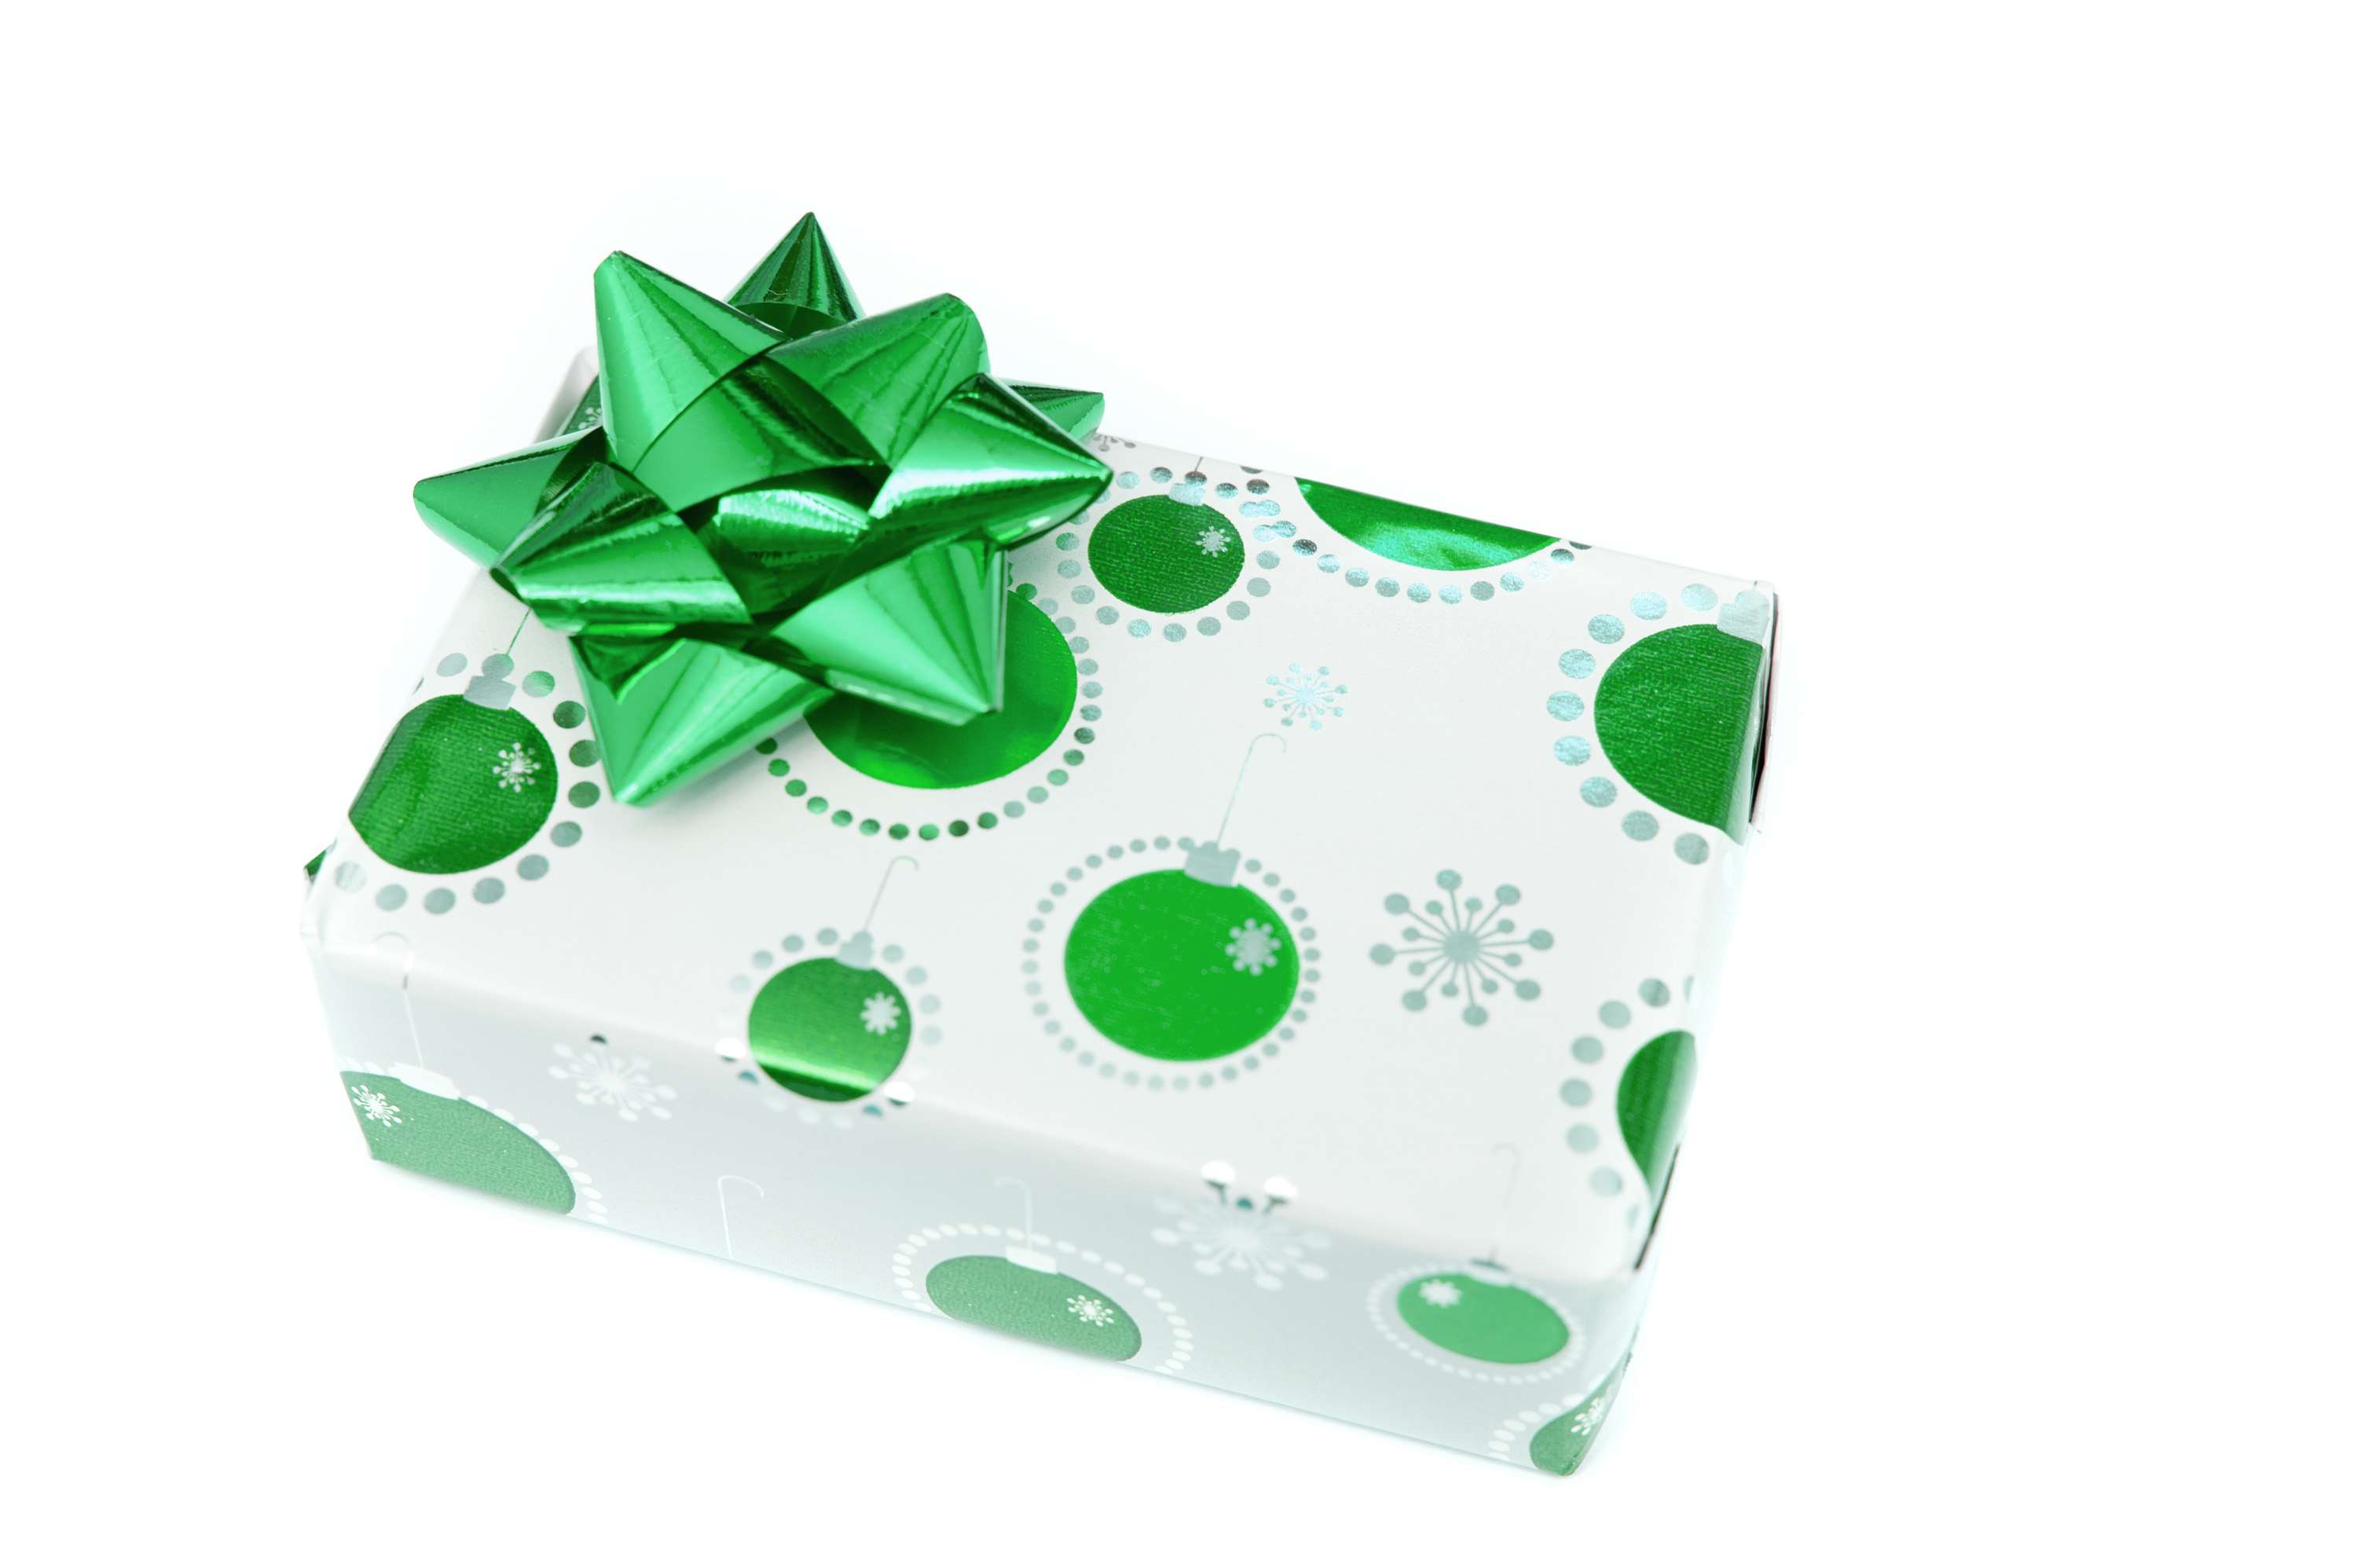 Decorative green Christmas gift box with bow and patterned seasonal paper with Xmas baubles isolated on white